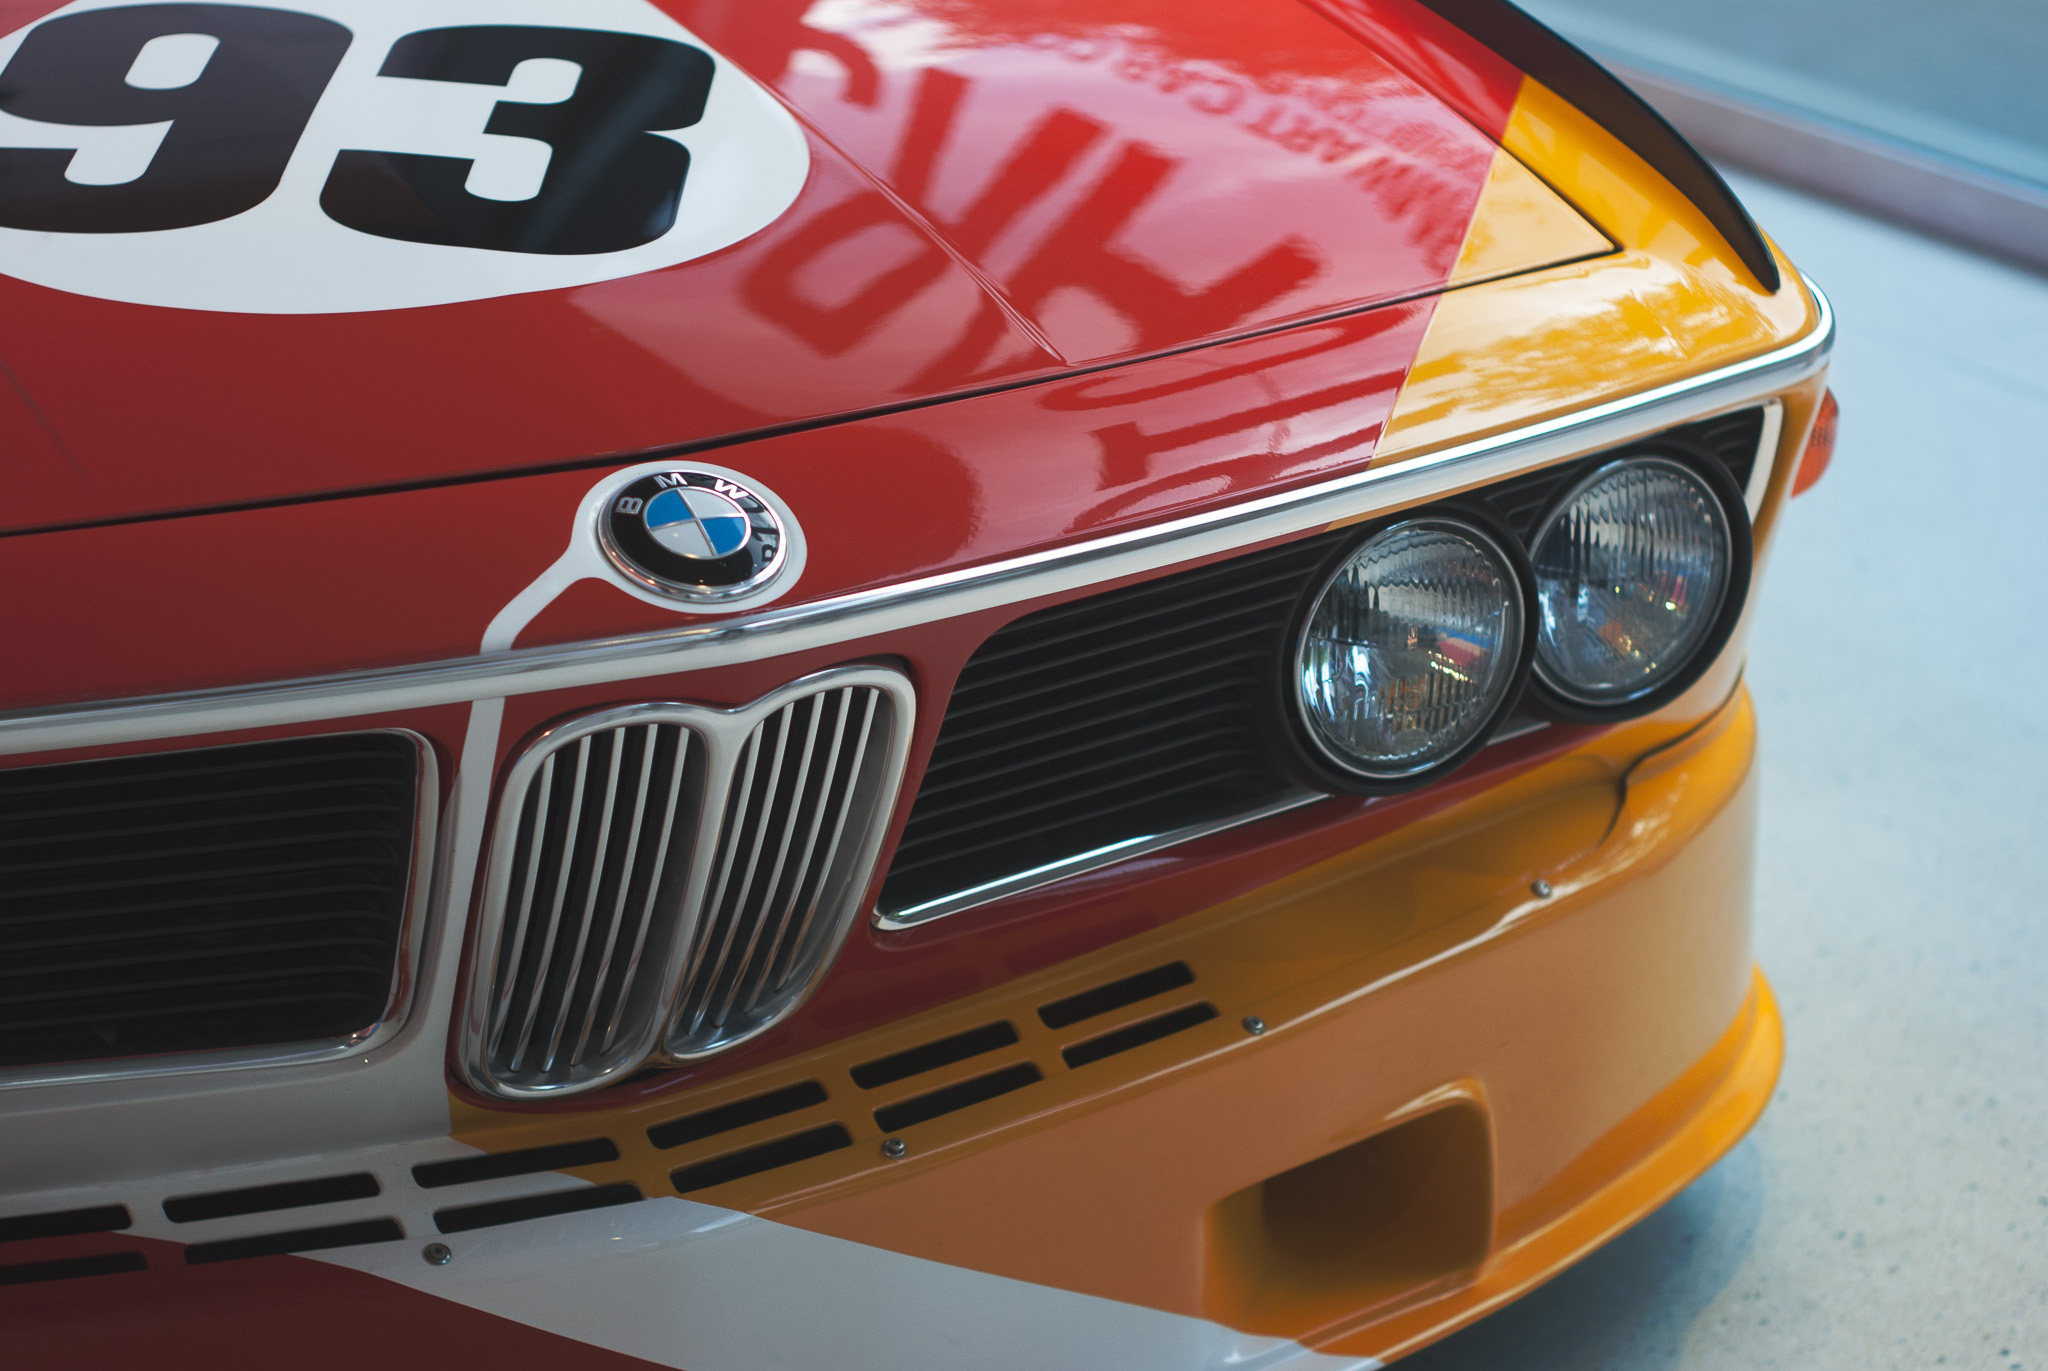 BMW 3.0 CSL - Art Car 01 - Alexander Calder